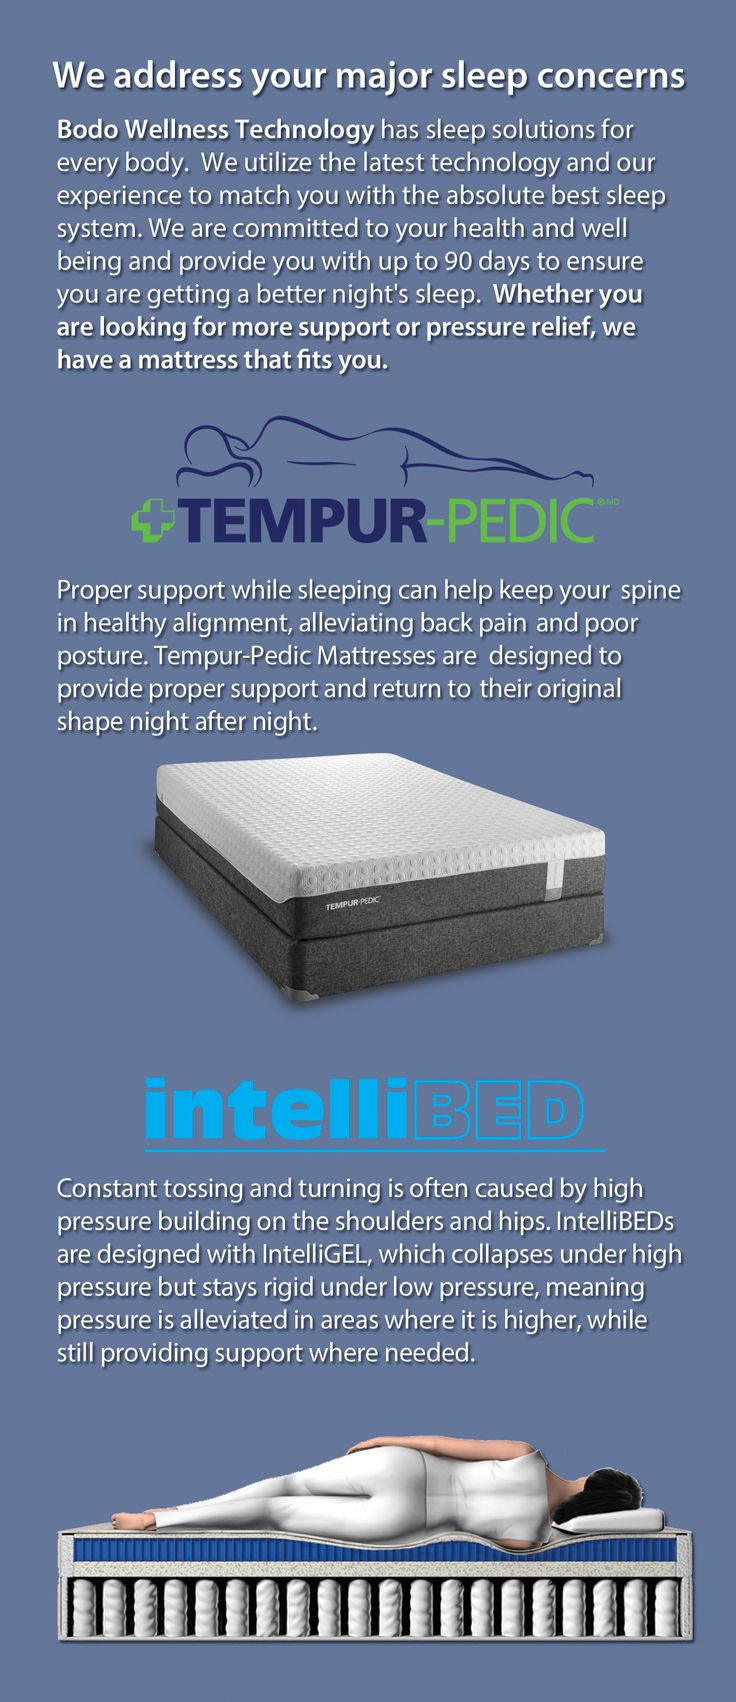 Wellness Technology strives to carry the absolute best in therapeutic mattresses. Each type we carry is truly a sleep system. Each brand has specific characteristics that allow them to cater to certain people. Our sleep centers offer a wide variety of mattresses to experience for yourself. Our staff will help you narrow down your options to a sleep system that addresses all of your unique needs. (And if you happen to fall asleep in one of our showrooms, don't worry, we won't judge.)